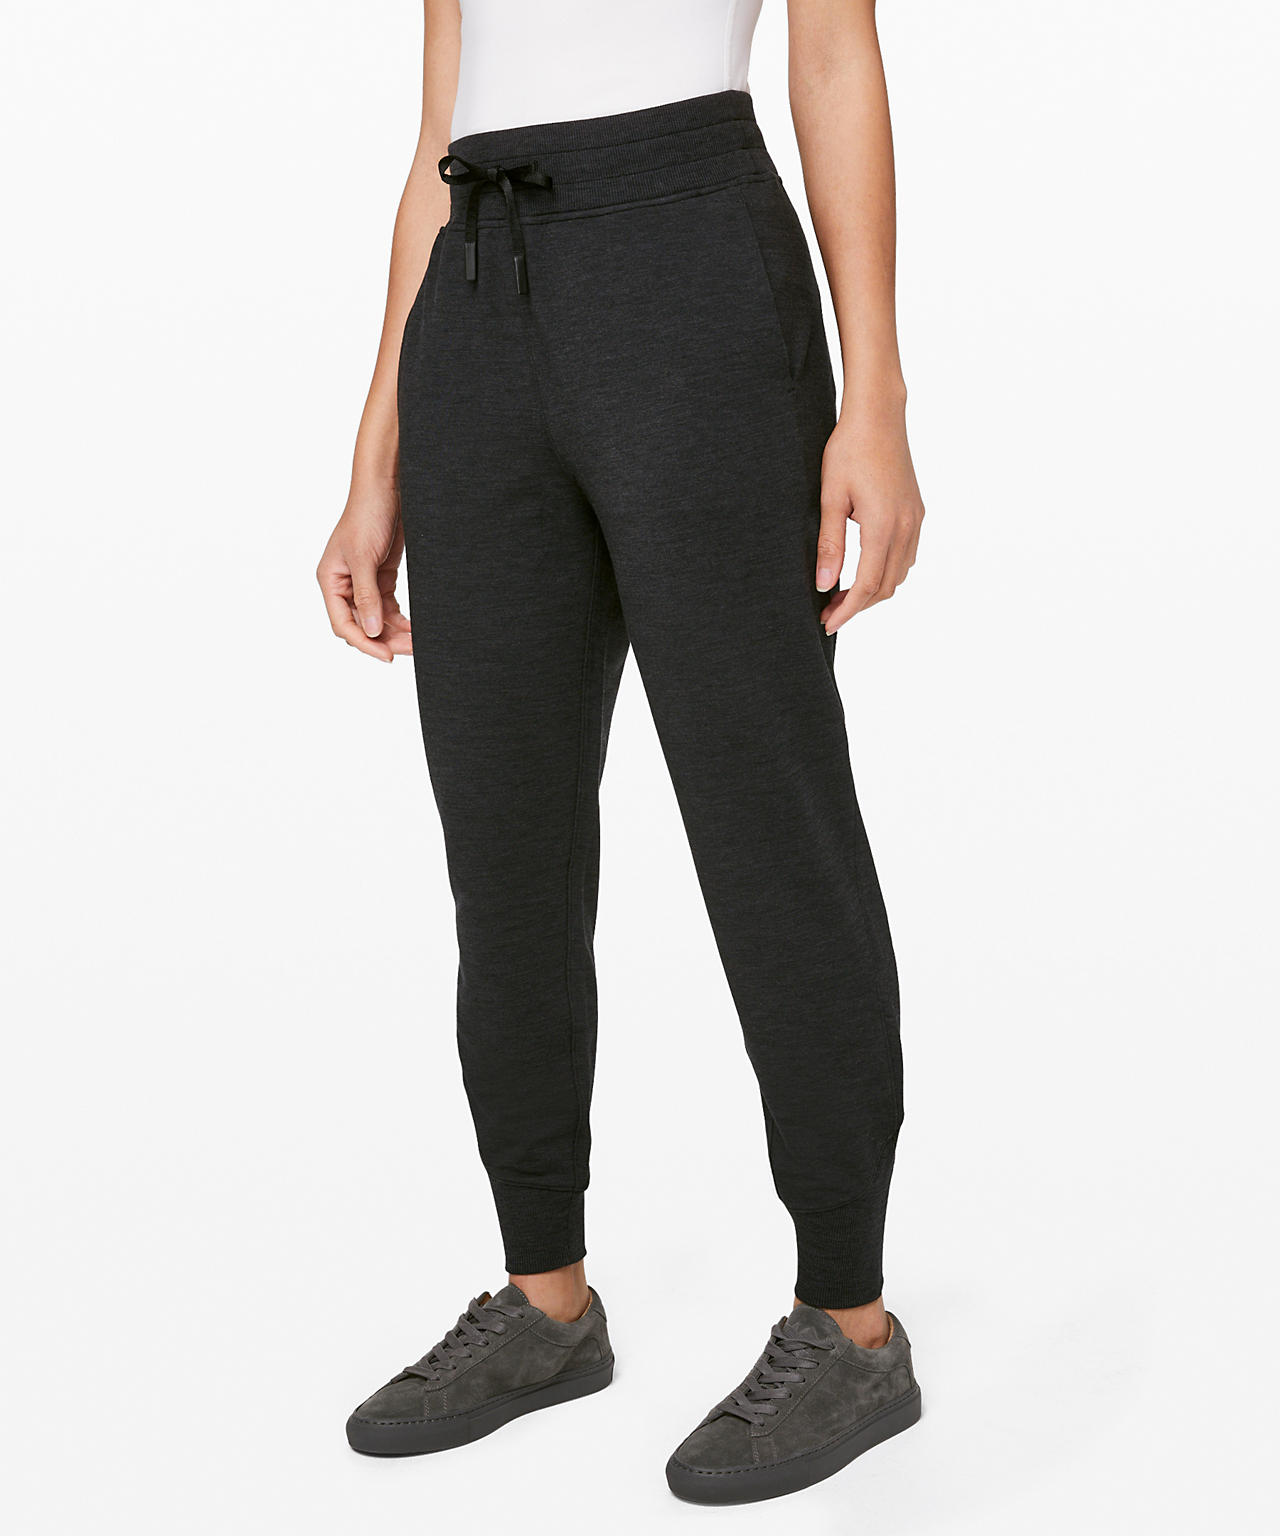 Rest For Resilience Jogger | Core Black | What's New At Lululemon